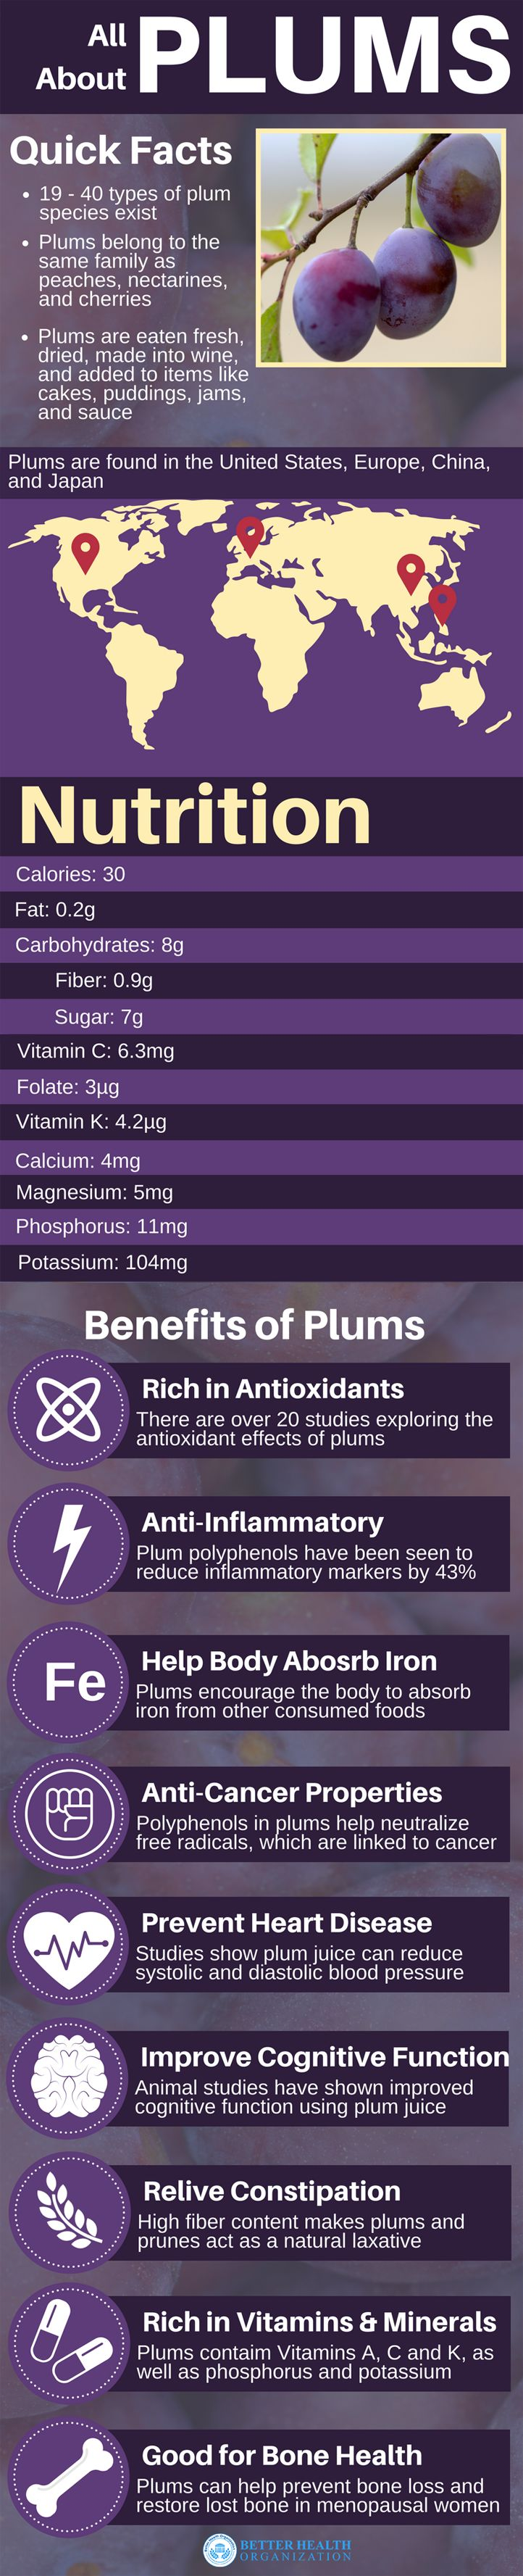 Complete guide to plums: benefits, nutrition, history, and types.